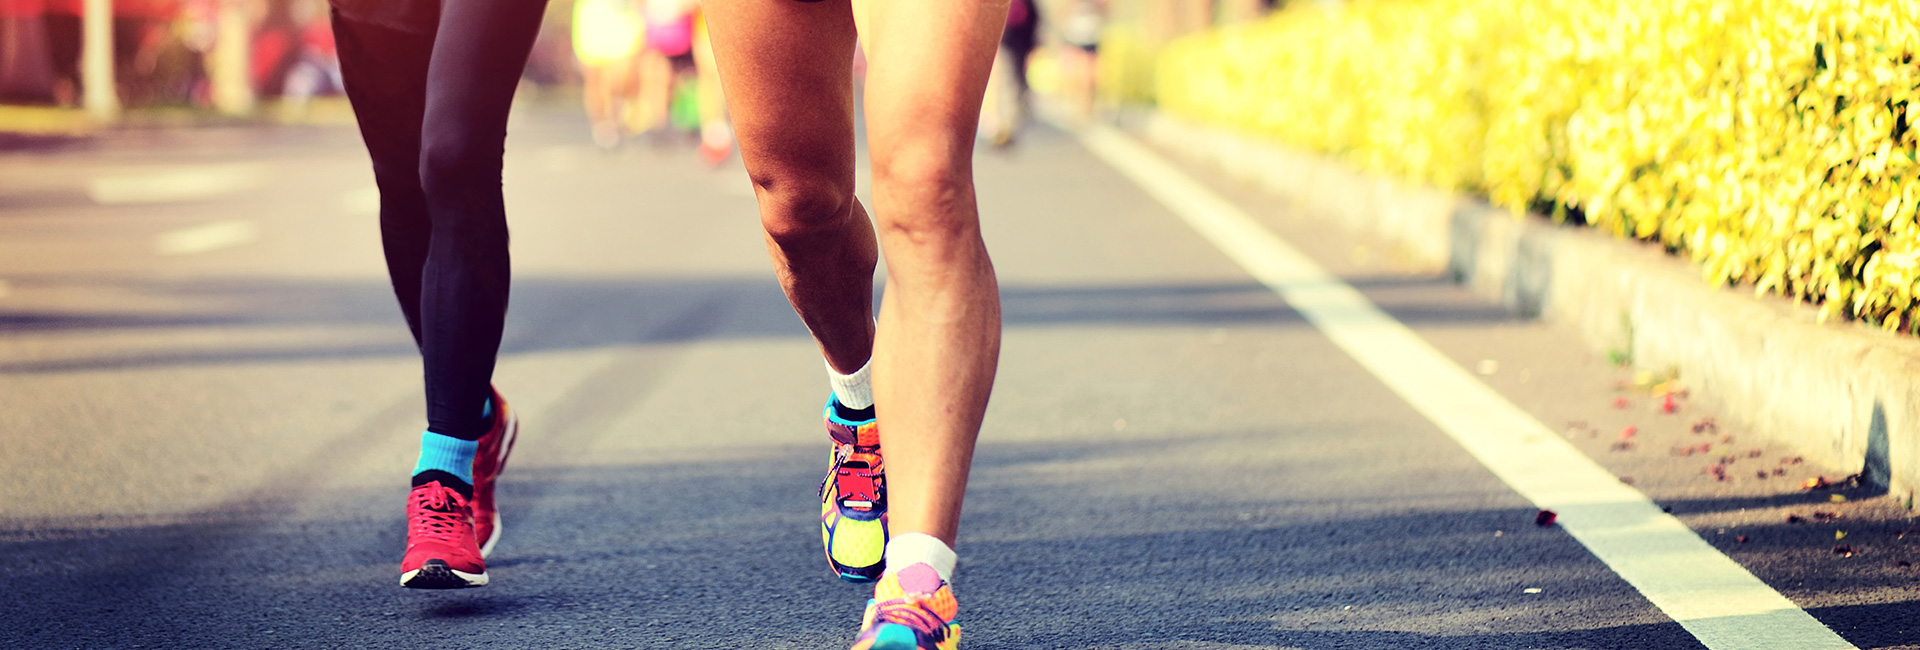 Marathon-Runner---Knee-Surgery---Recovery---Treatment---Physical-Therapy